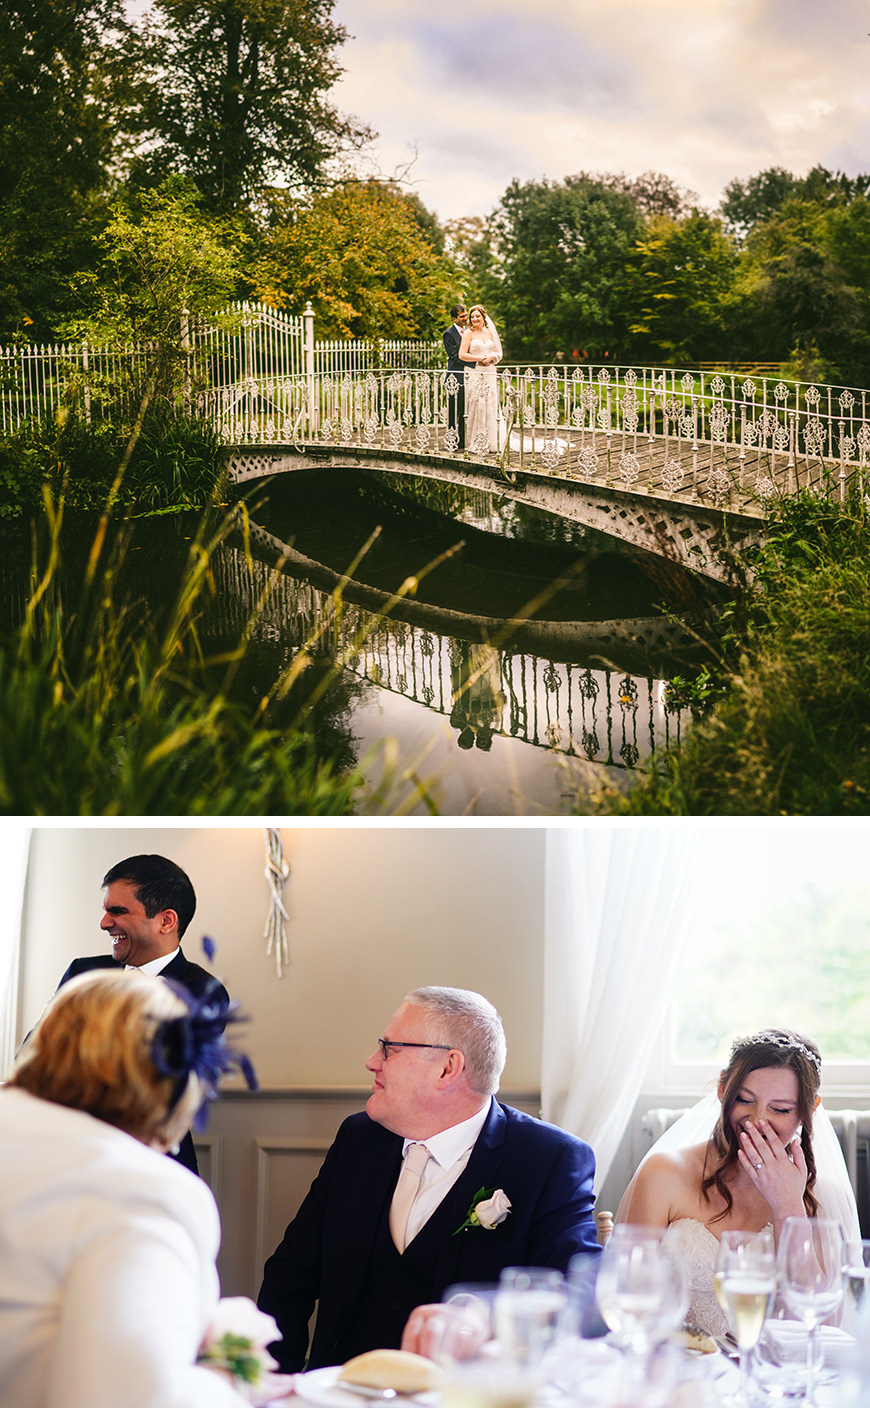 Real Wedding - Vicky and Lalit's Elegant Autumn Wedding at Morden Hall | CHWV